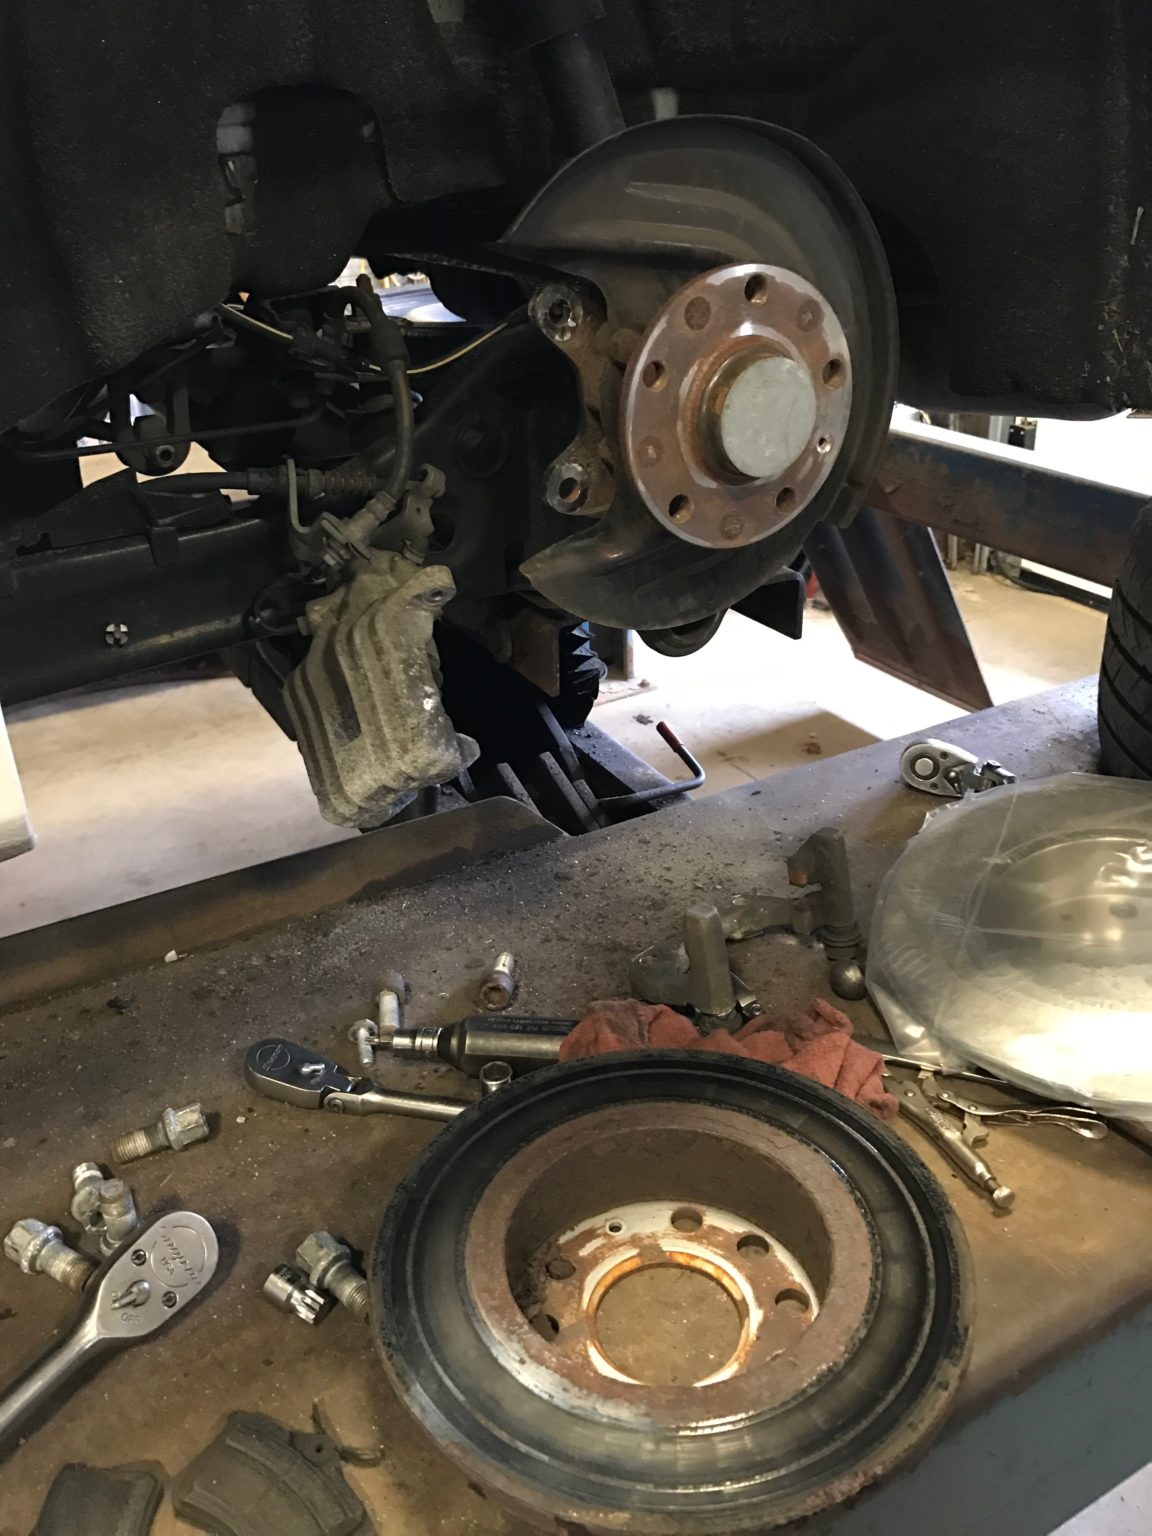 Car Maintenance Blog Framingham Natick Ma Auto Repair Mechanic Engine Brakes Service 2010 Jeep Transmission In This Week At Absolute Care Of Our Expert Mechanics